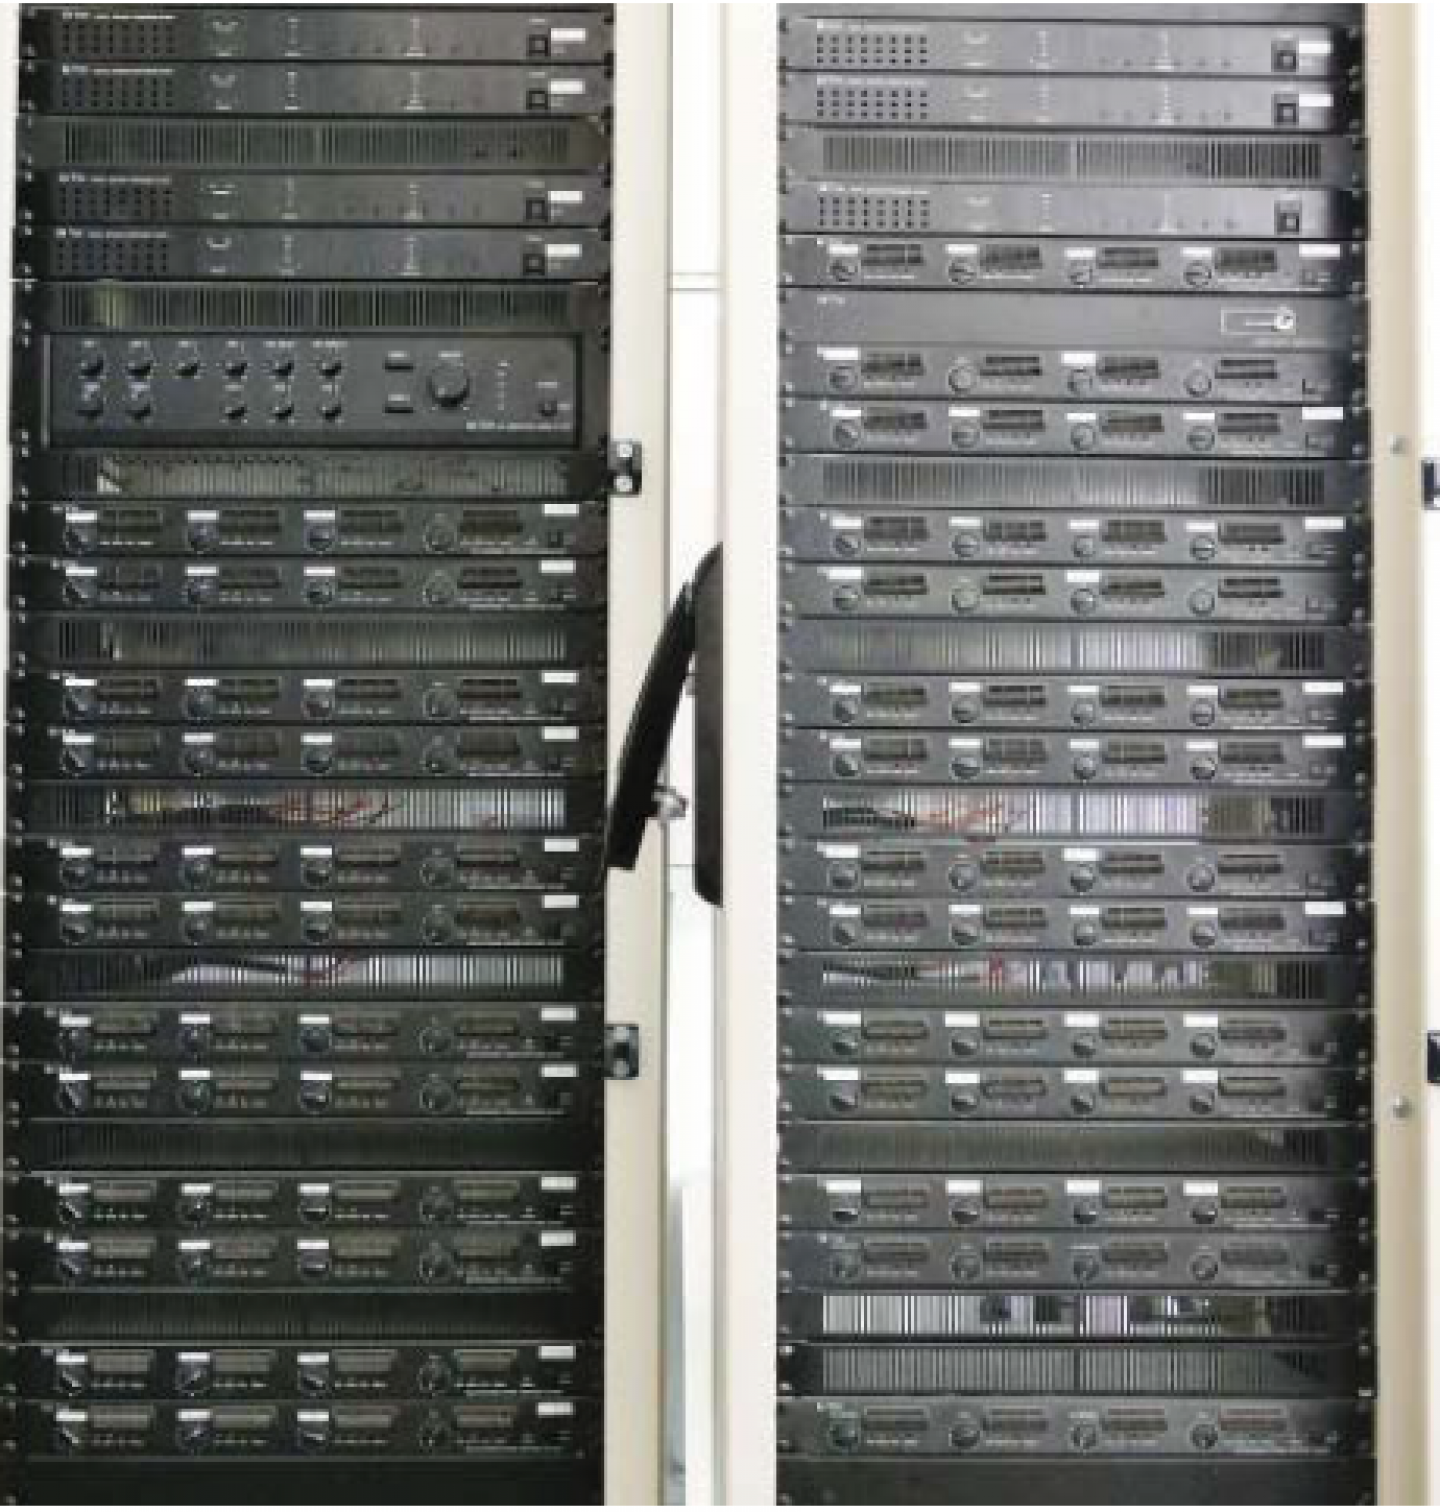 27 TOA DA-250F amplifiers in use